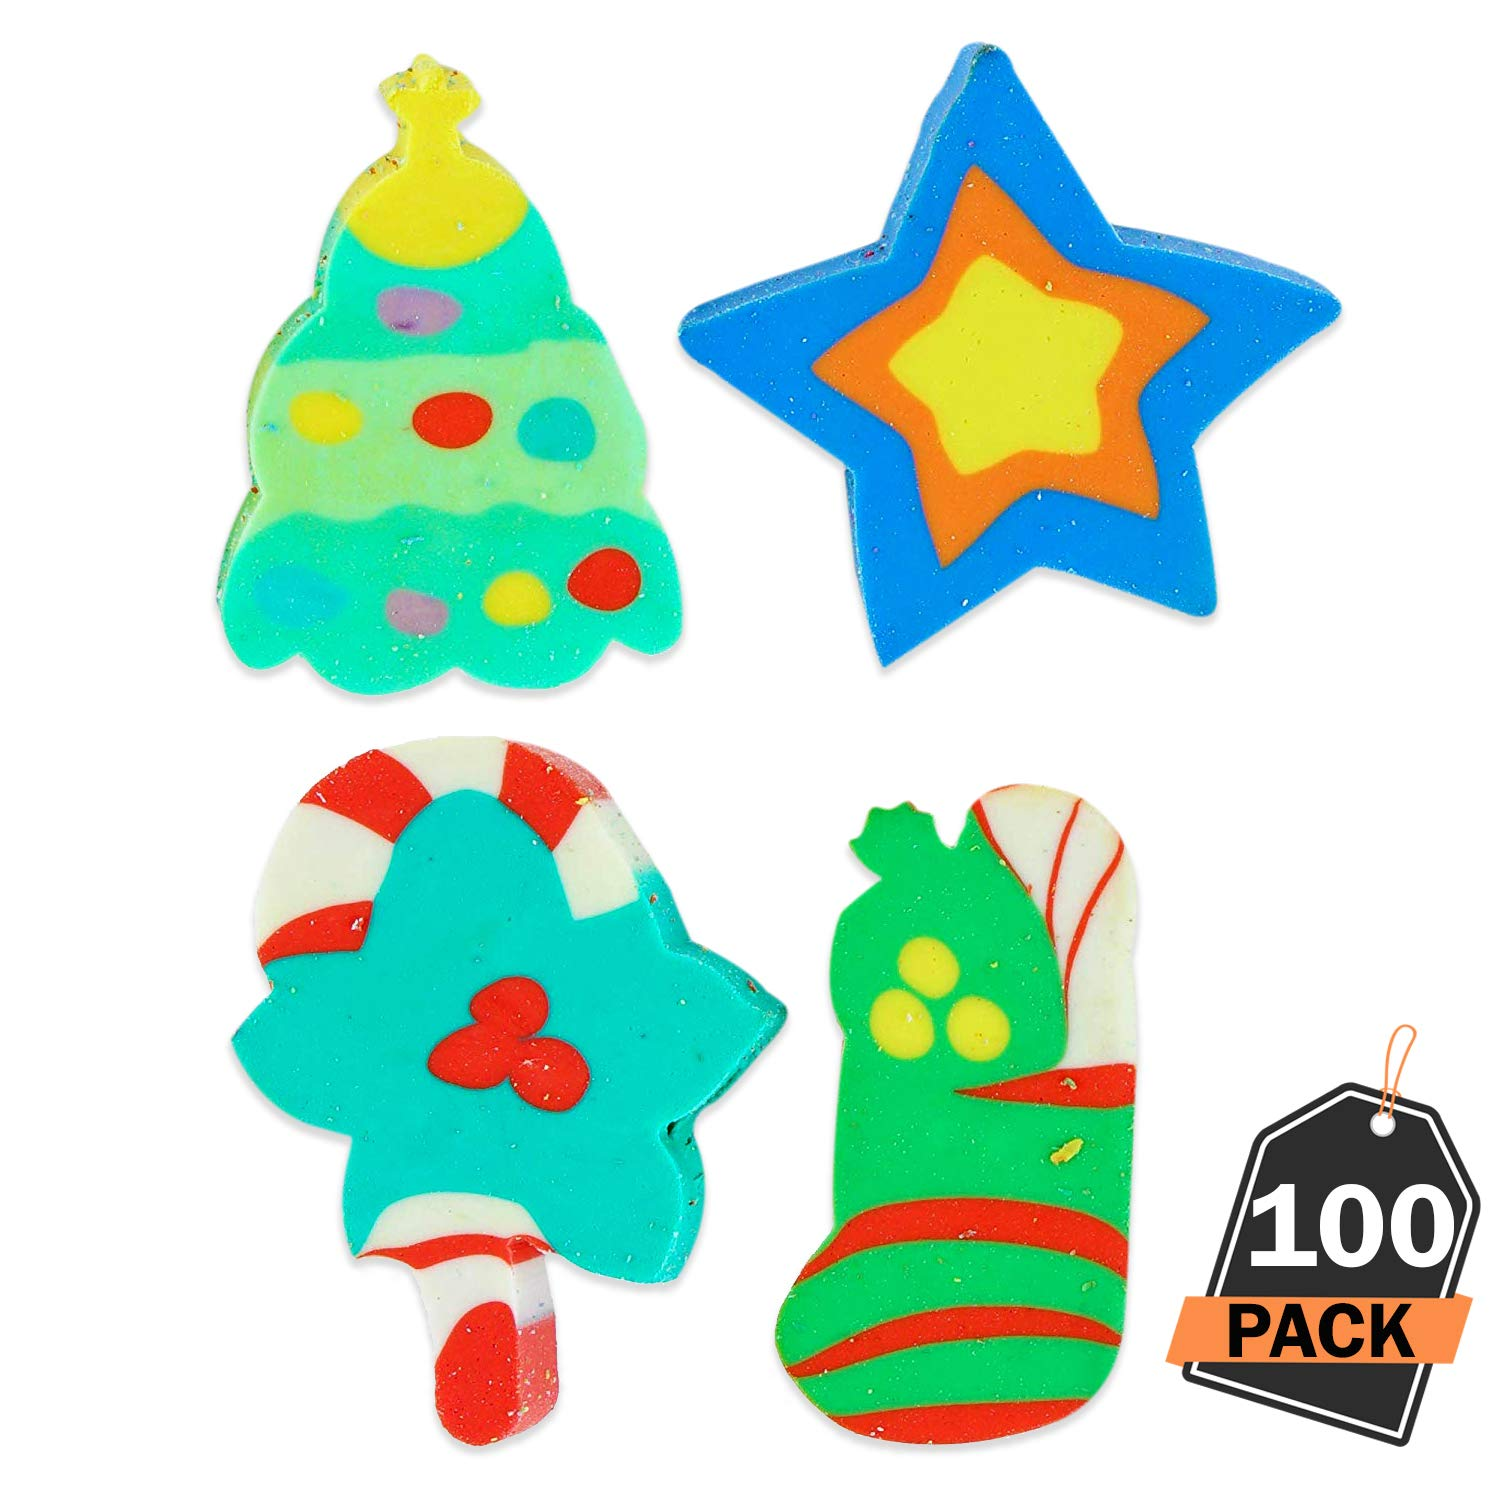 Kompanion 100 Piece Christmas Erasers and Pencil Toppers, Fun Party Favors, Christmas Stocking Fillers, Class, 4 Festive Designs .